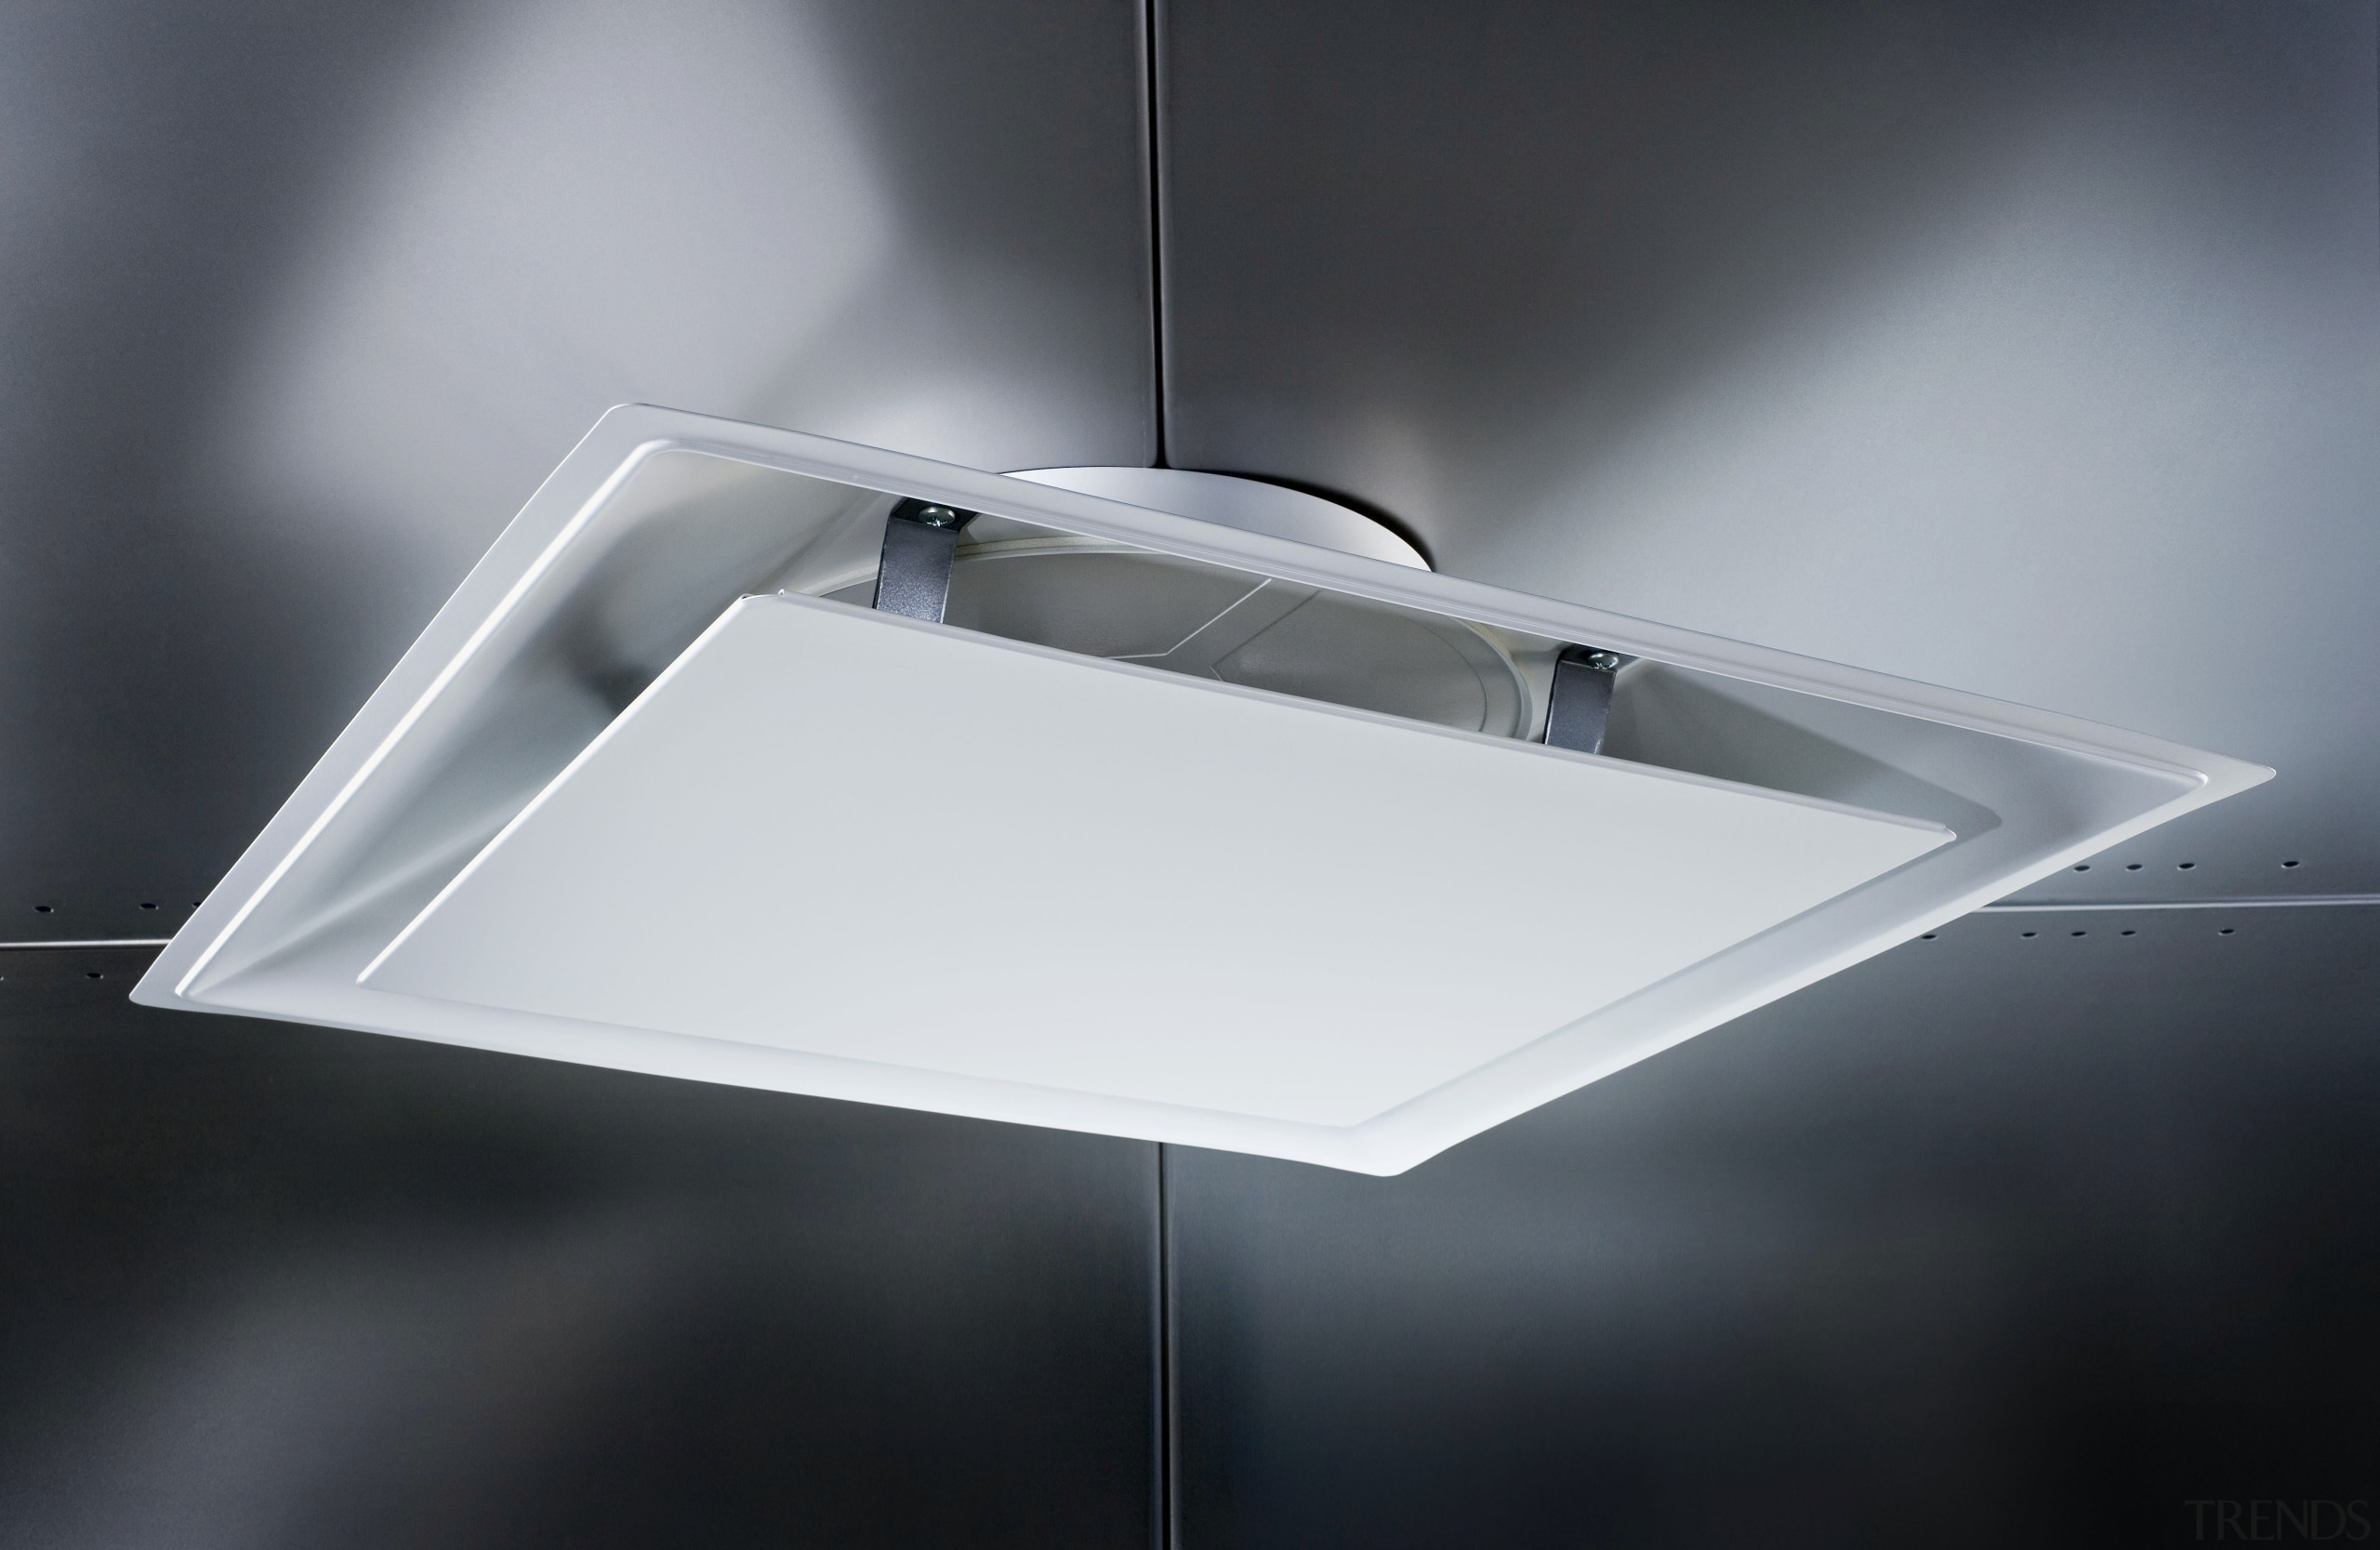 In todays design world, sustainability is key to angle, ceiling fixture, daylighting, light fixture, lighting, product design, gray, black